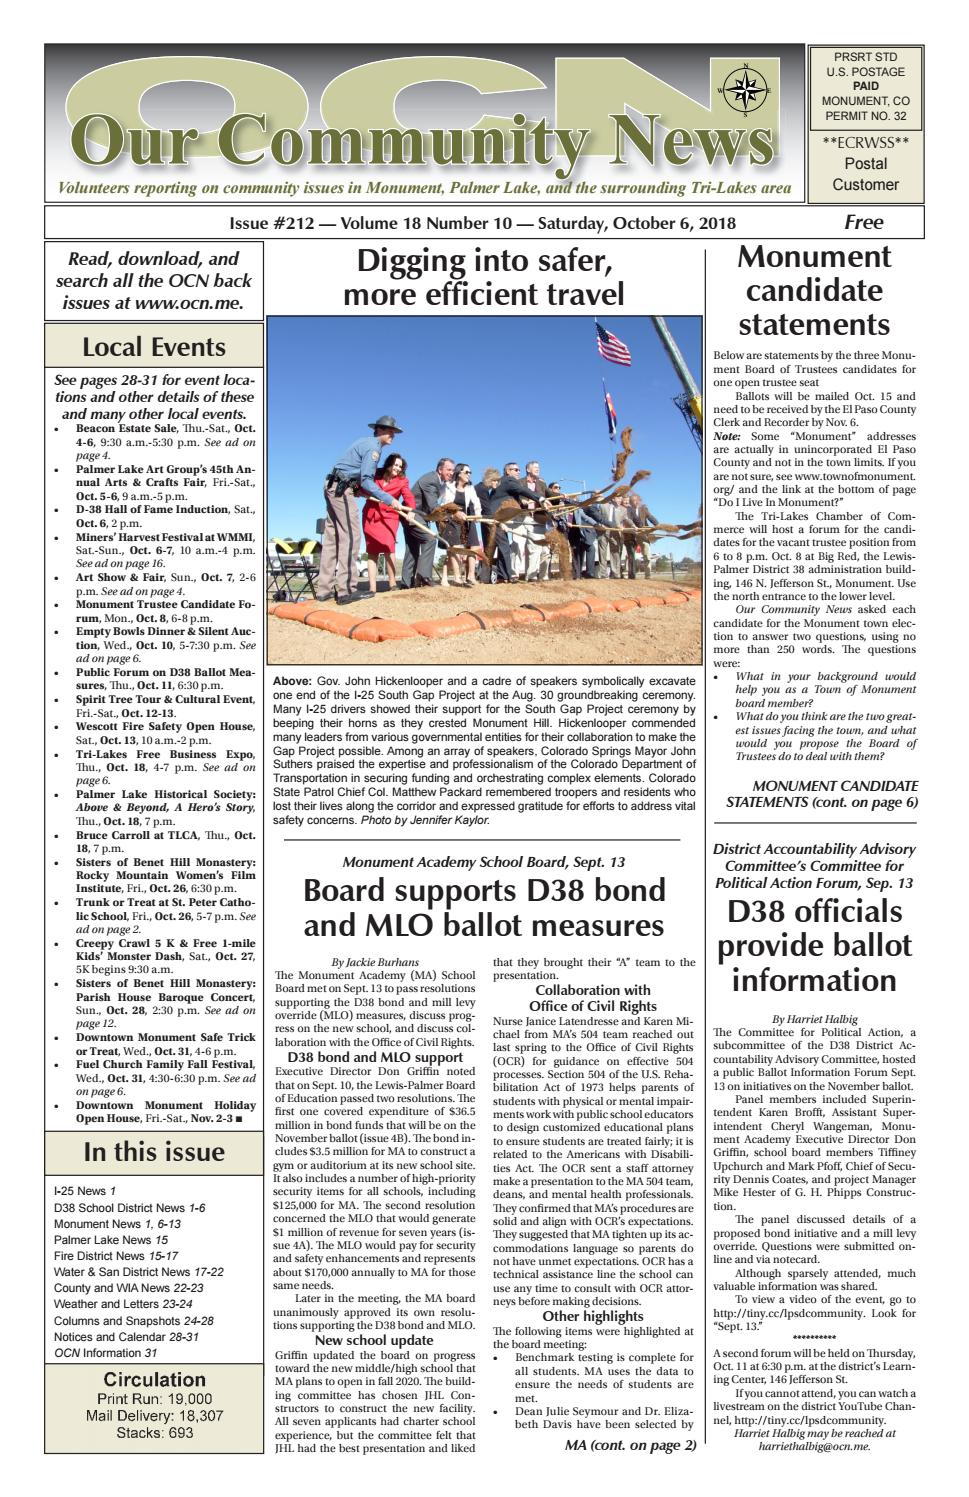 7473e1805dc Vol. 18 No. 10 - October 6, 2018 by Our Community News - issuu